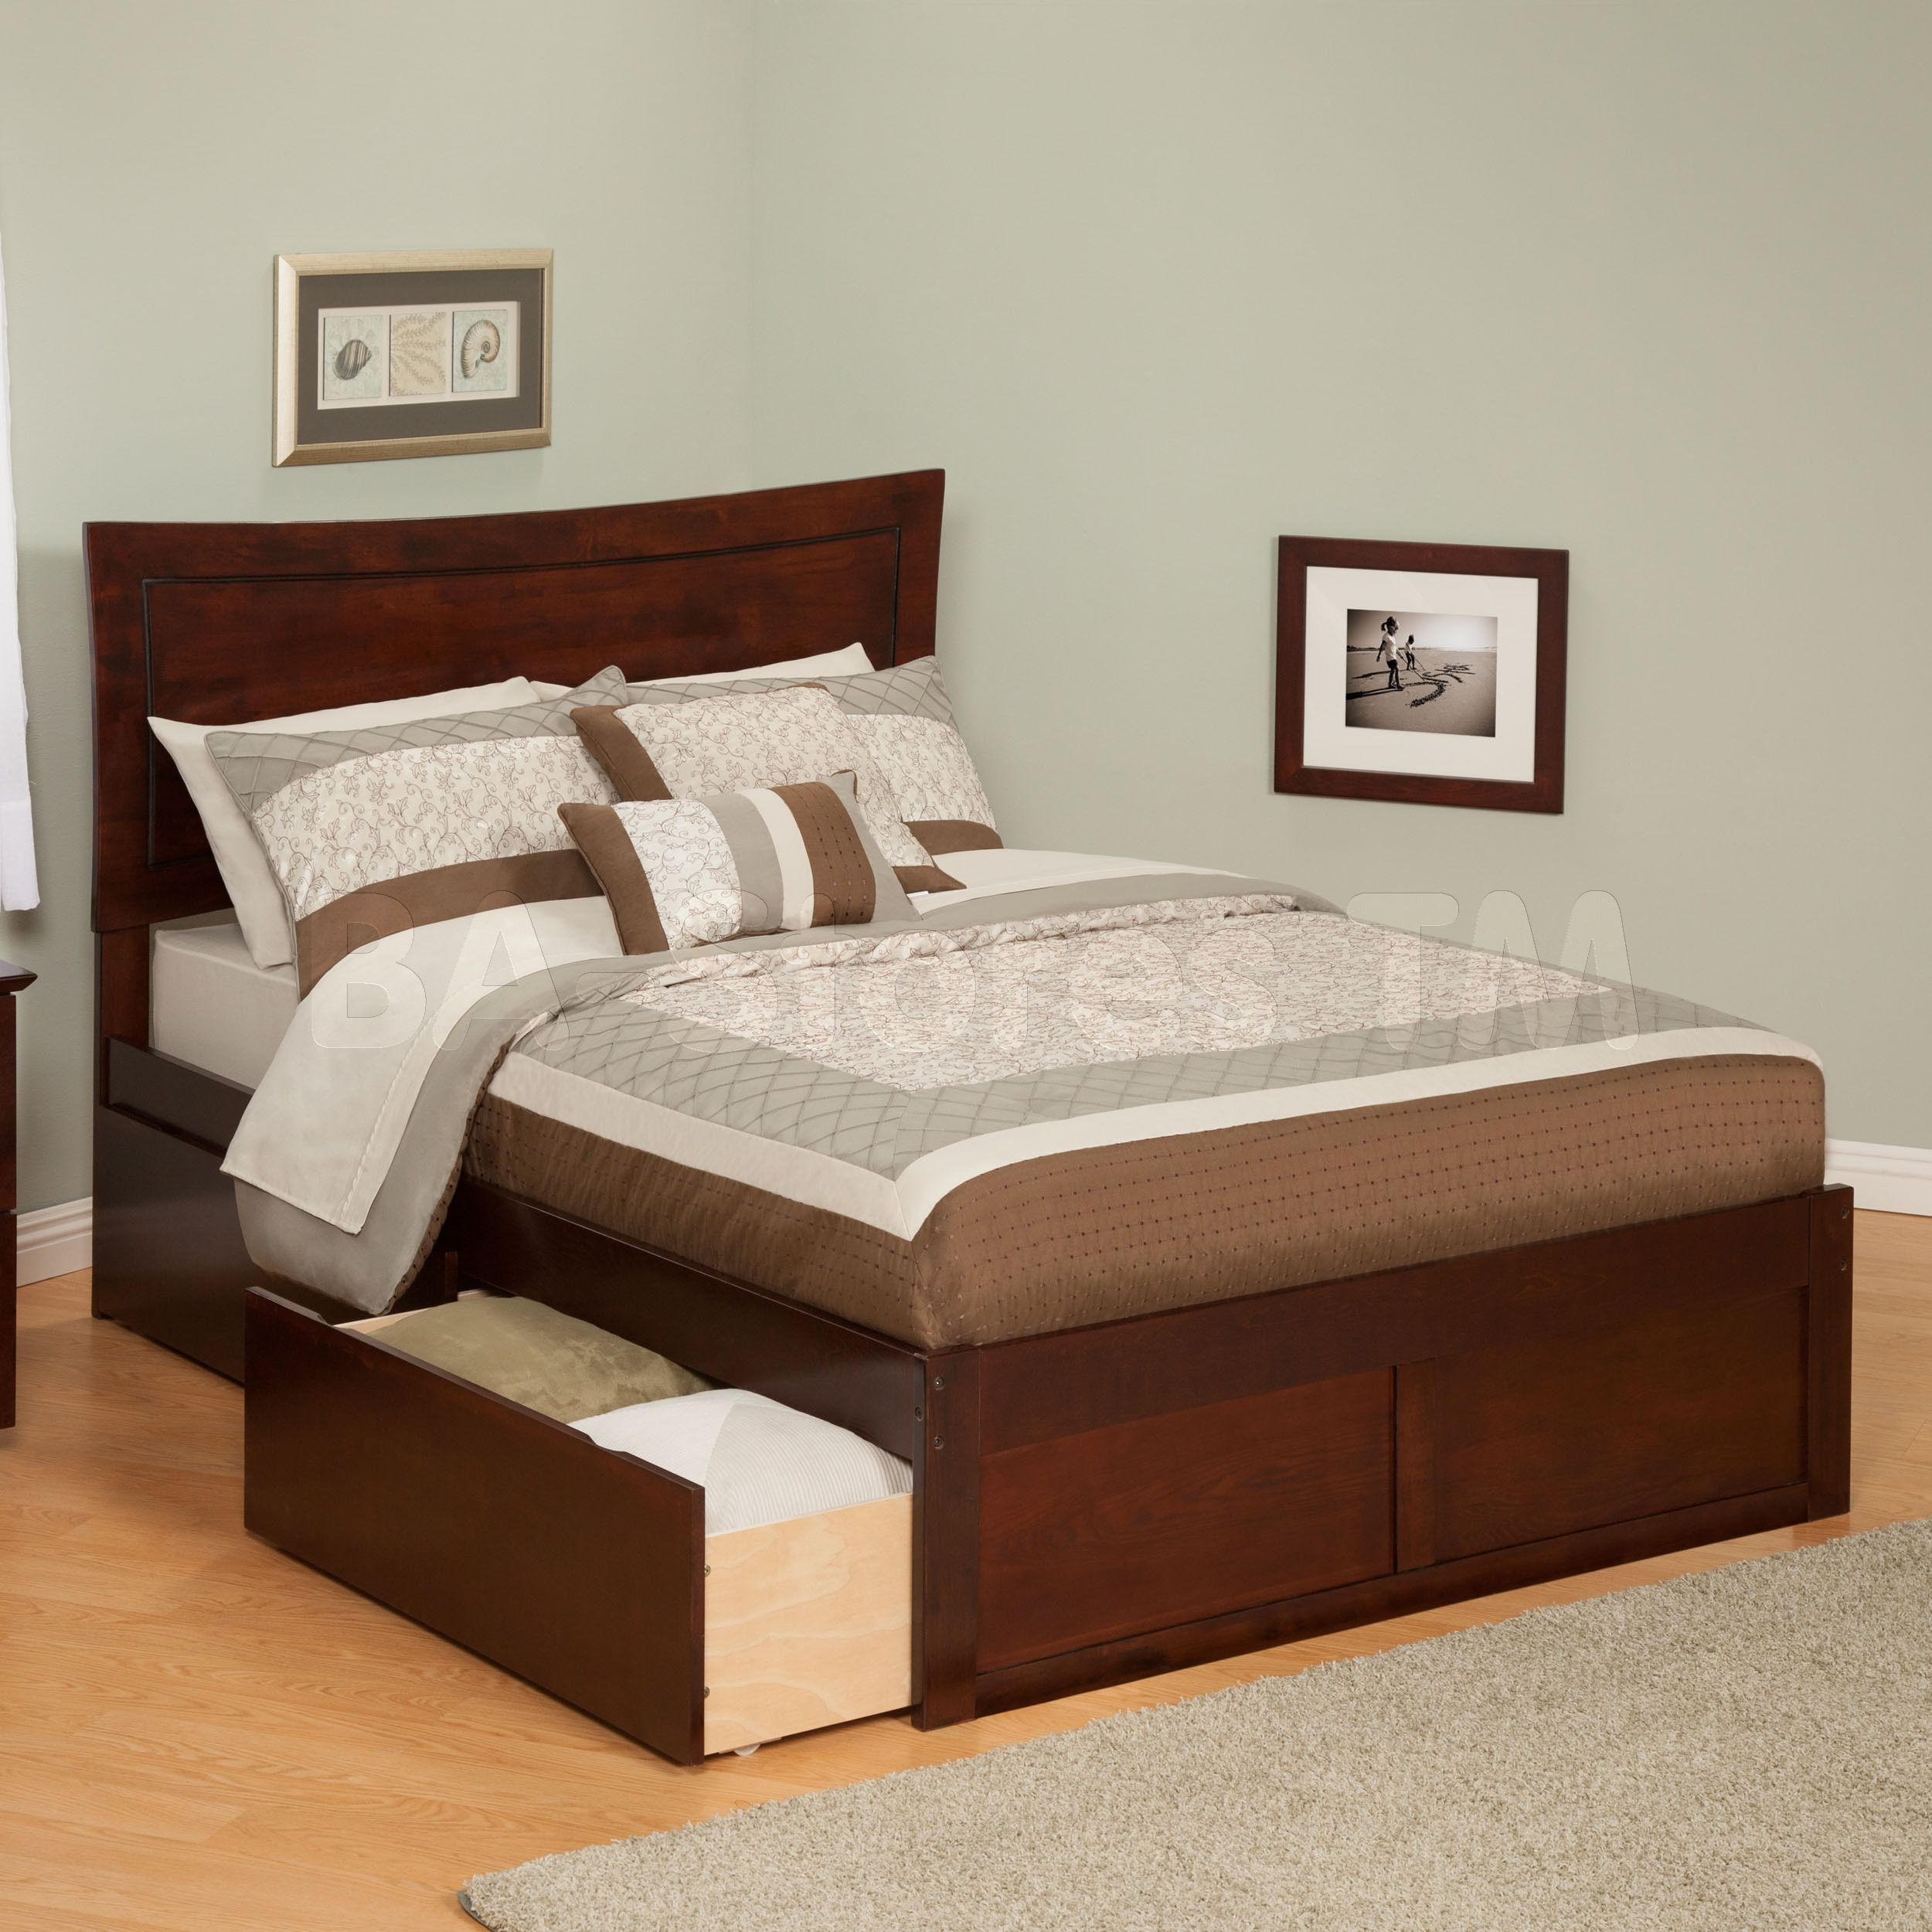 Metro Platform Bed Flat Footboard Urban Drawers in